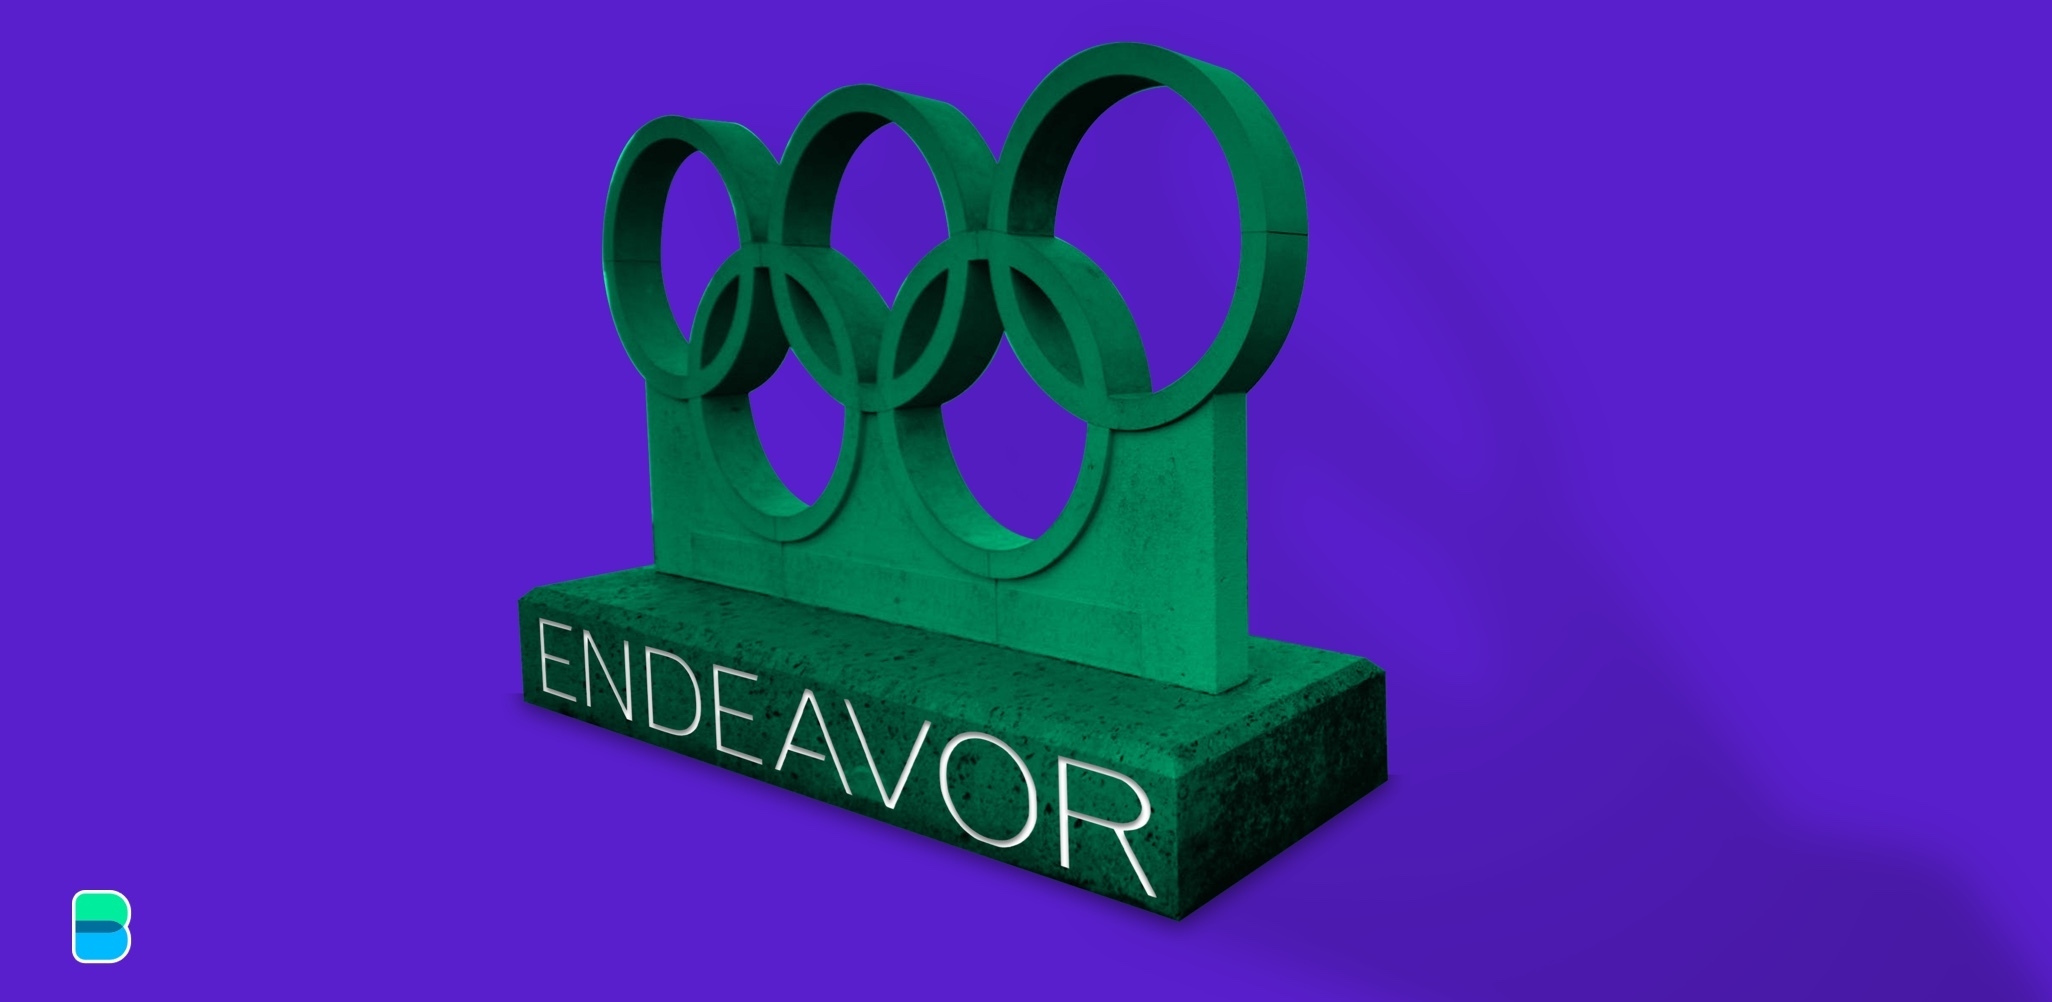 Endeavor hits the podium at the Olympics